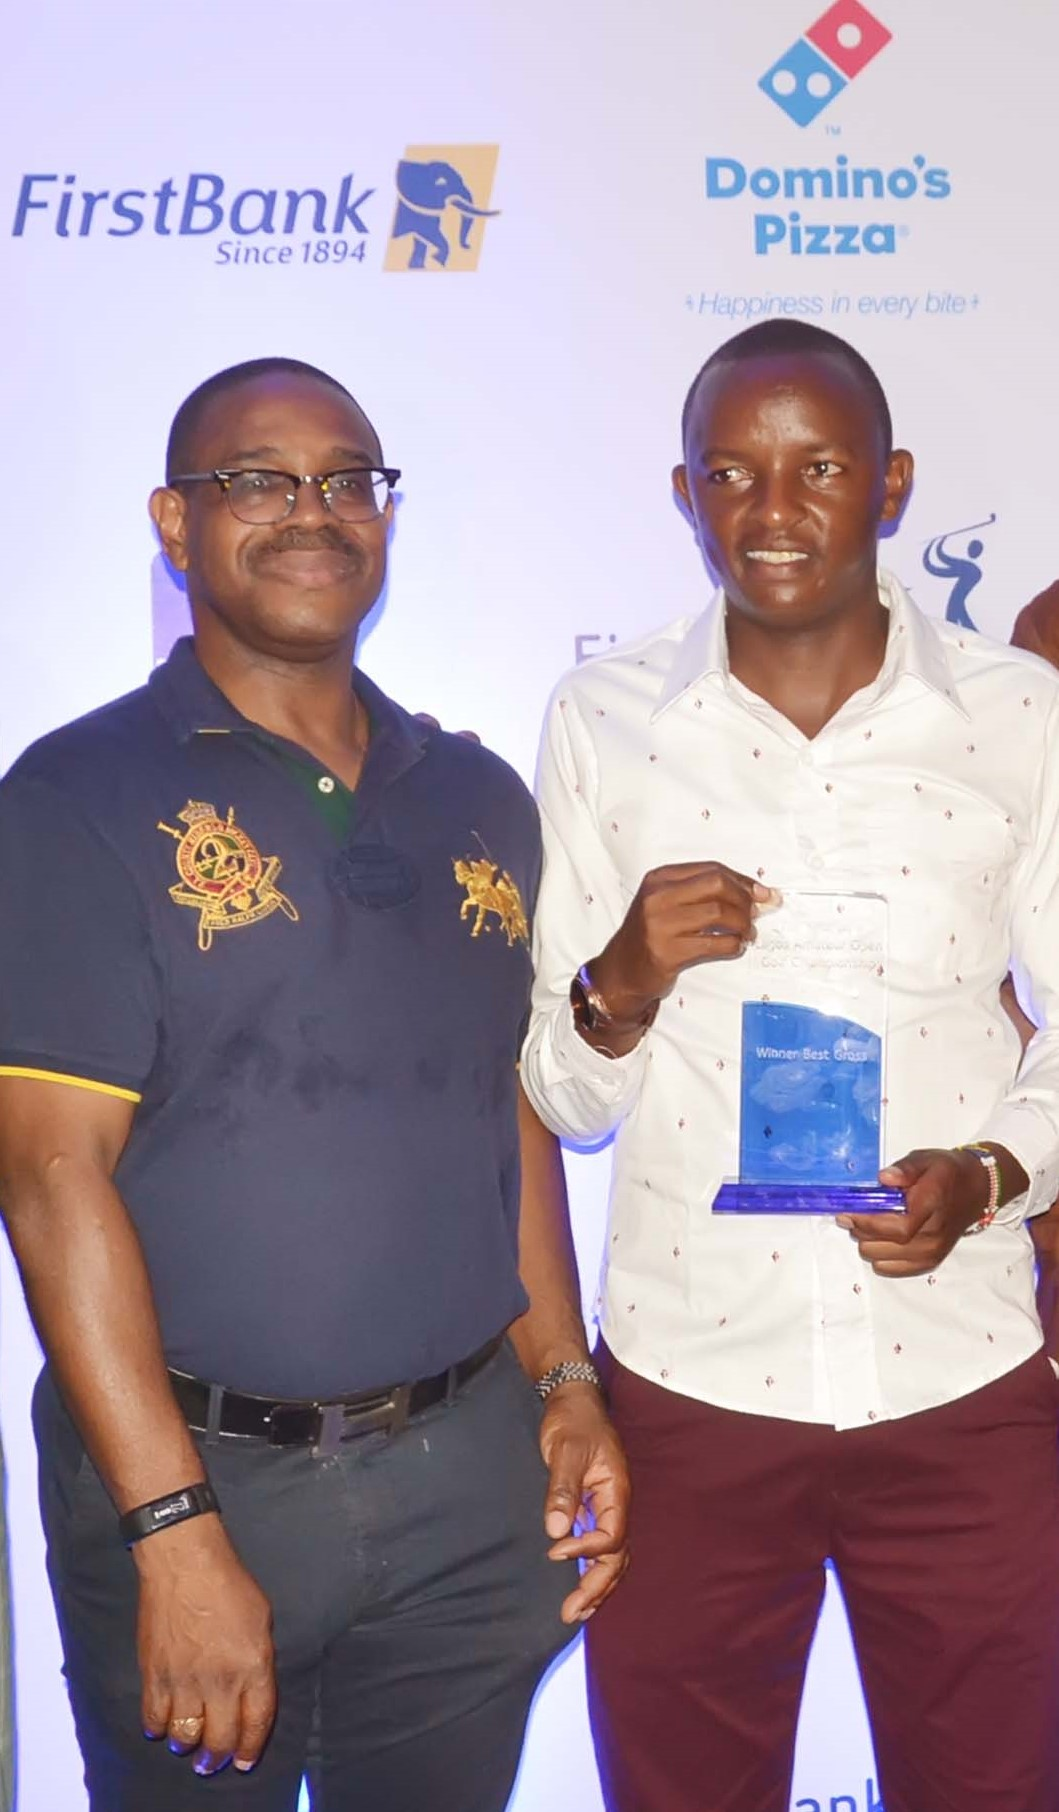 IRSTBANK LAGOS AMATEUR OPEN GOLF CHAMPIONSHIP ACHIEVES GLOBAL RECOGNTION, GETS LISTED IN THE WAGR